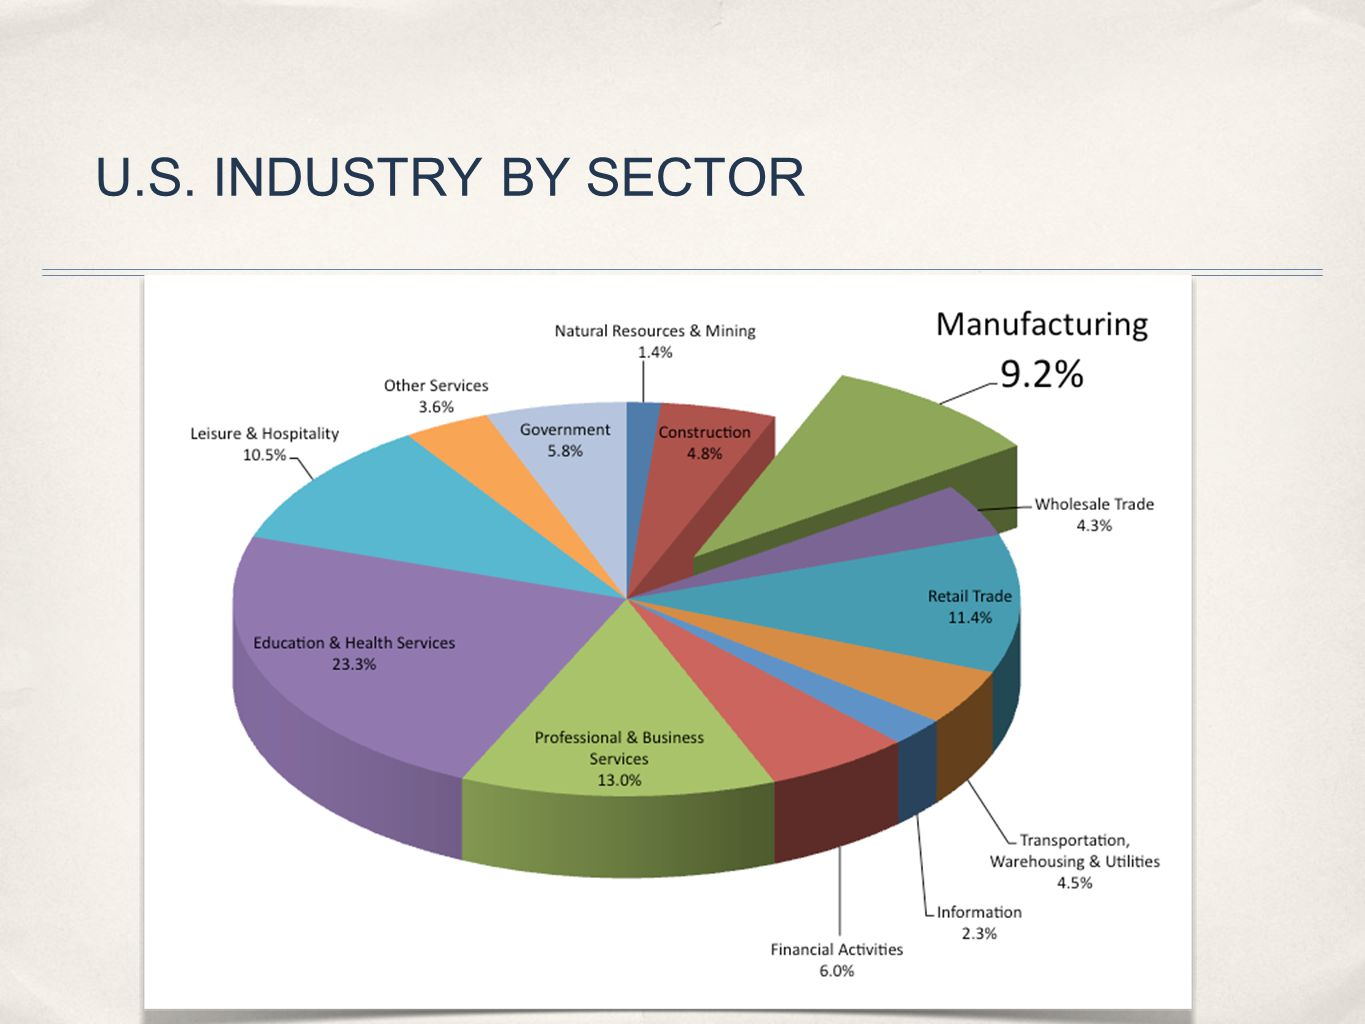 U.S. INDUSTRY BY SECTOR